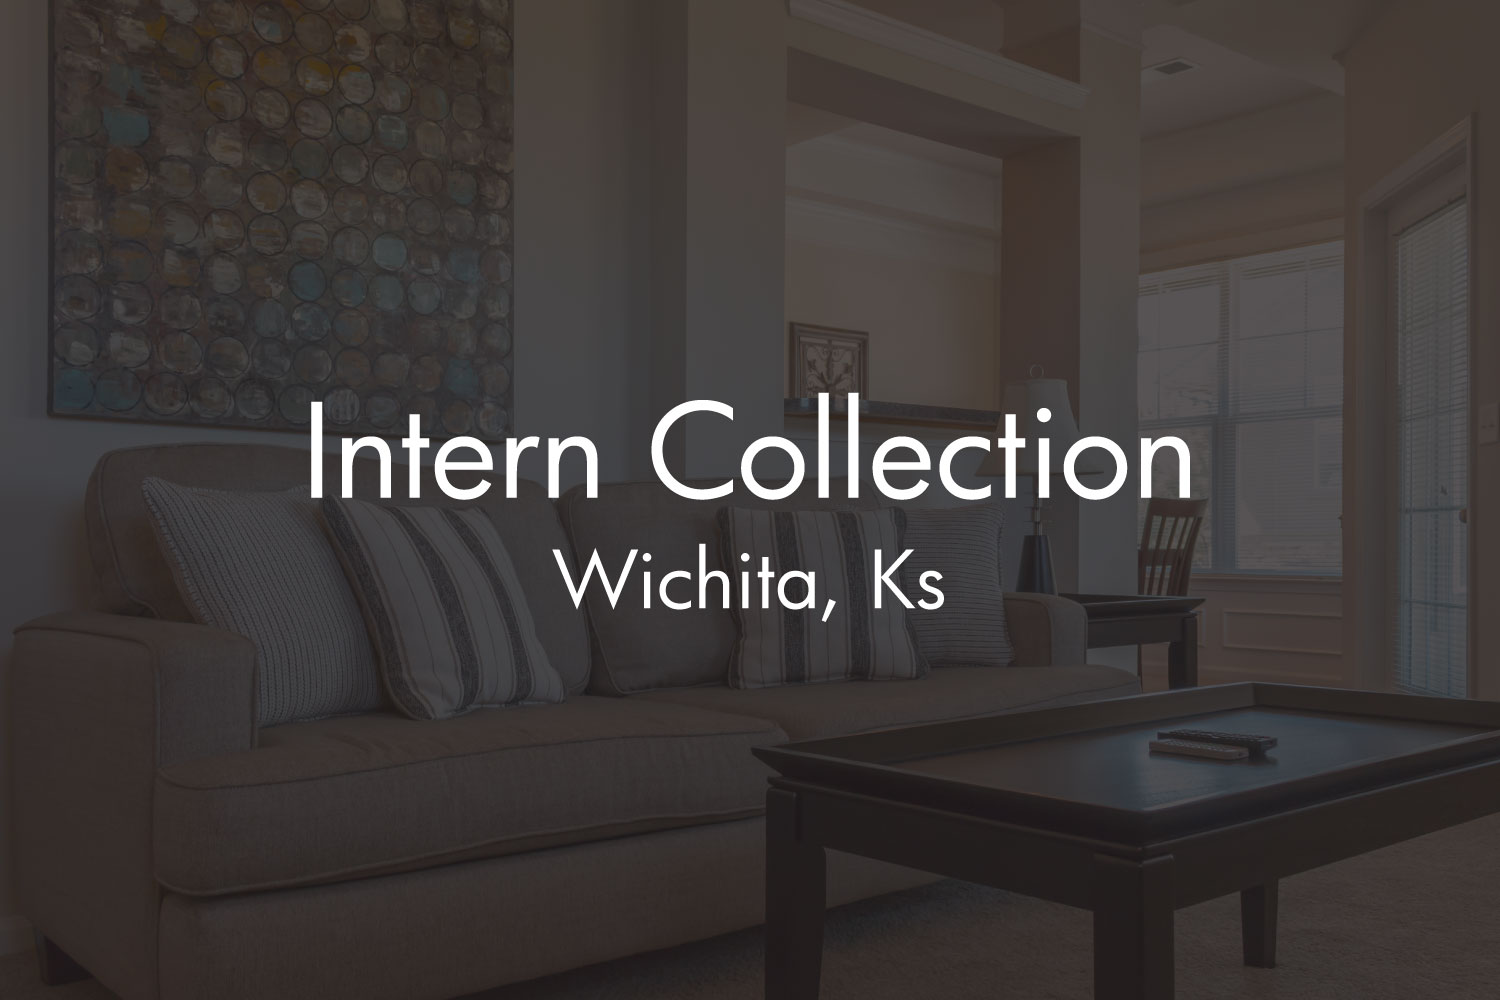 Intern-Collection-web-thumbnail.jpg